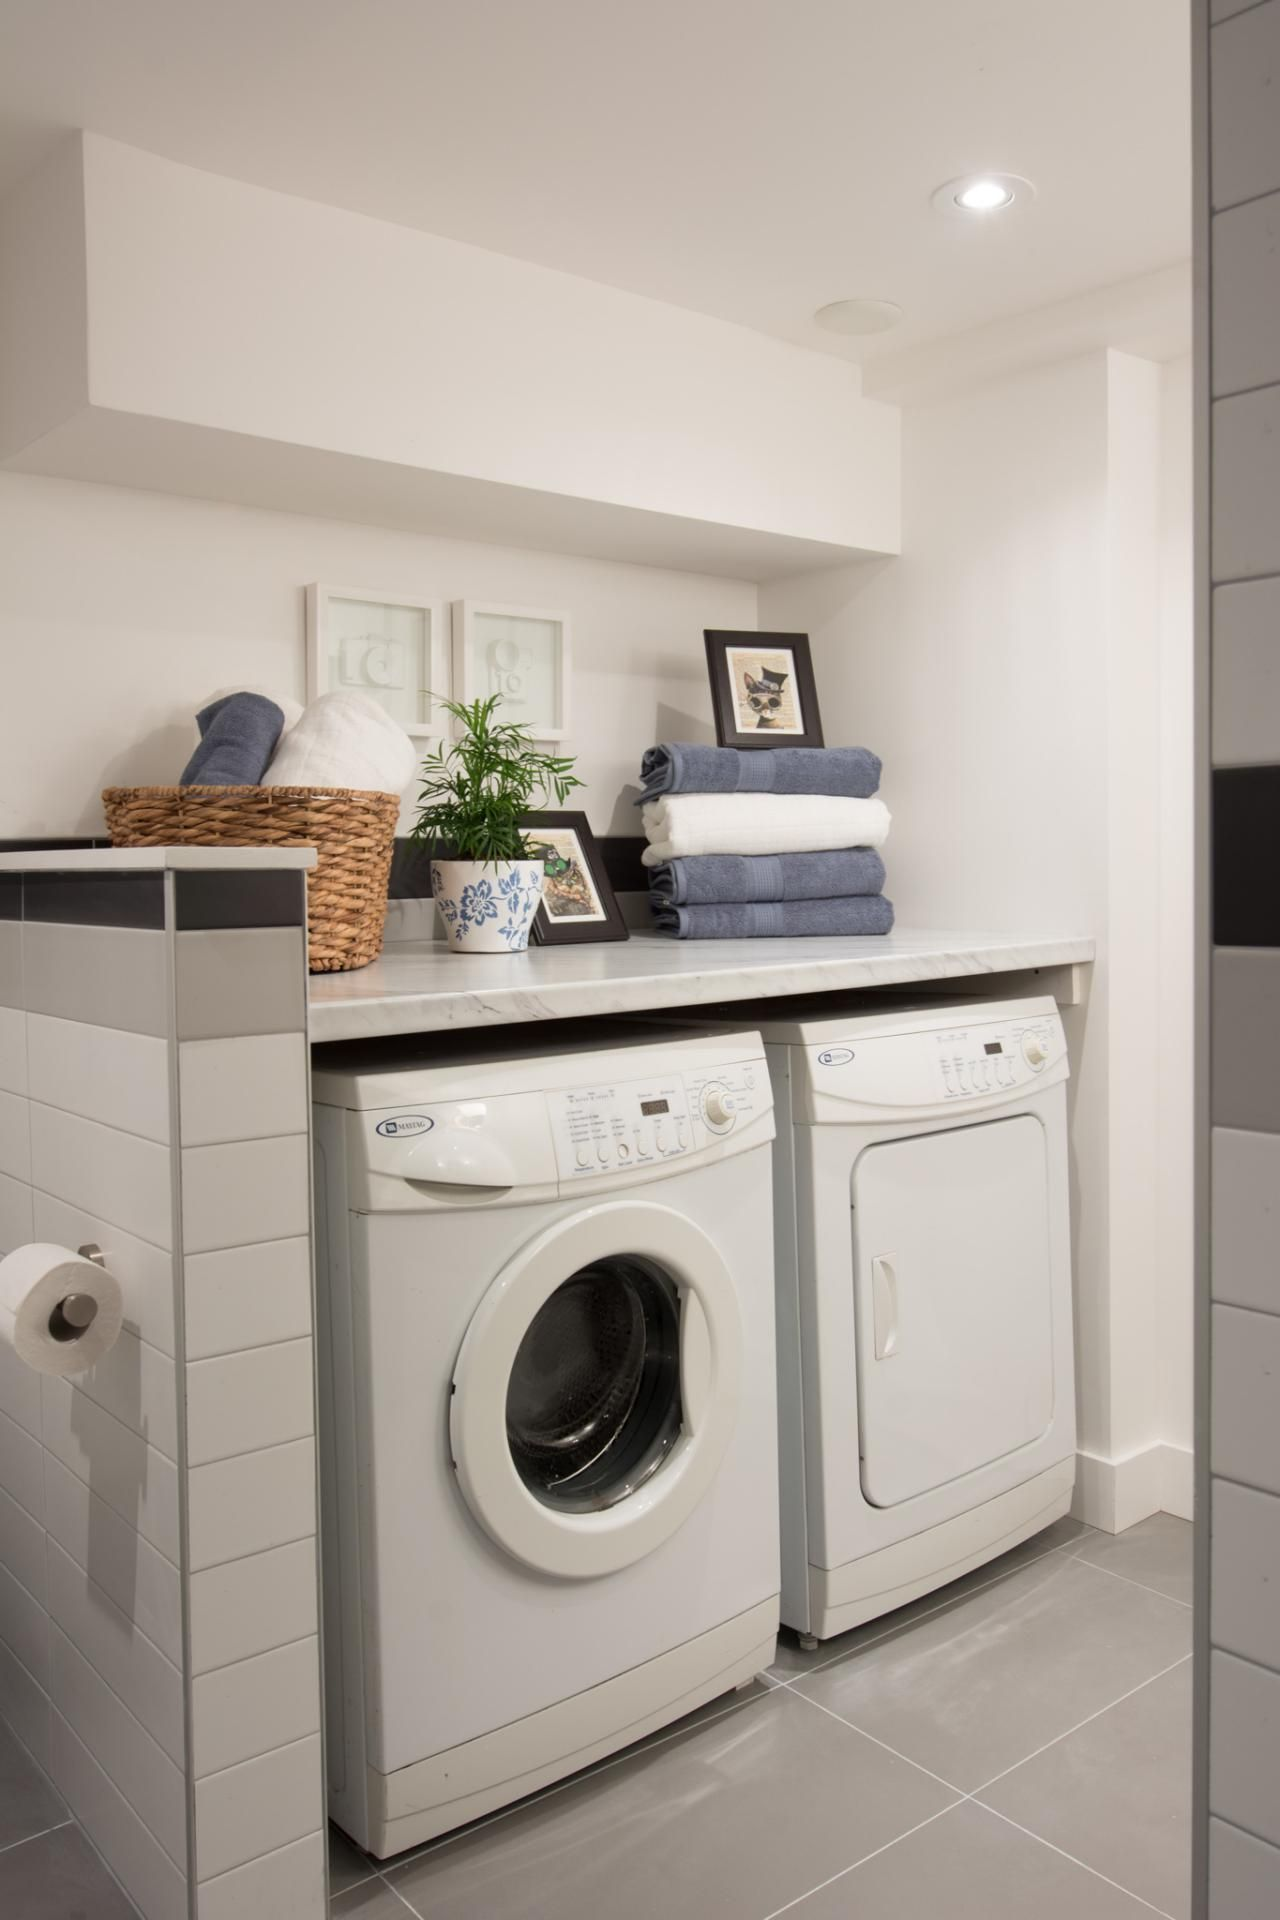 As Seen On Hgtv S Love It Or List It Hilary S Design For This Laundry Room Bathroom Combination Includes A Neutral Color Palette With Complimentary Pops Of